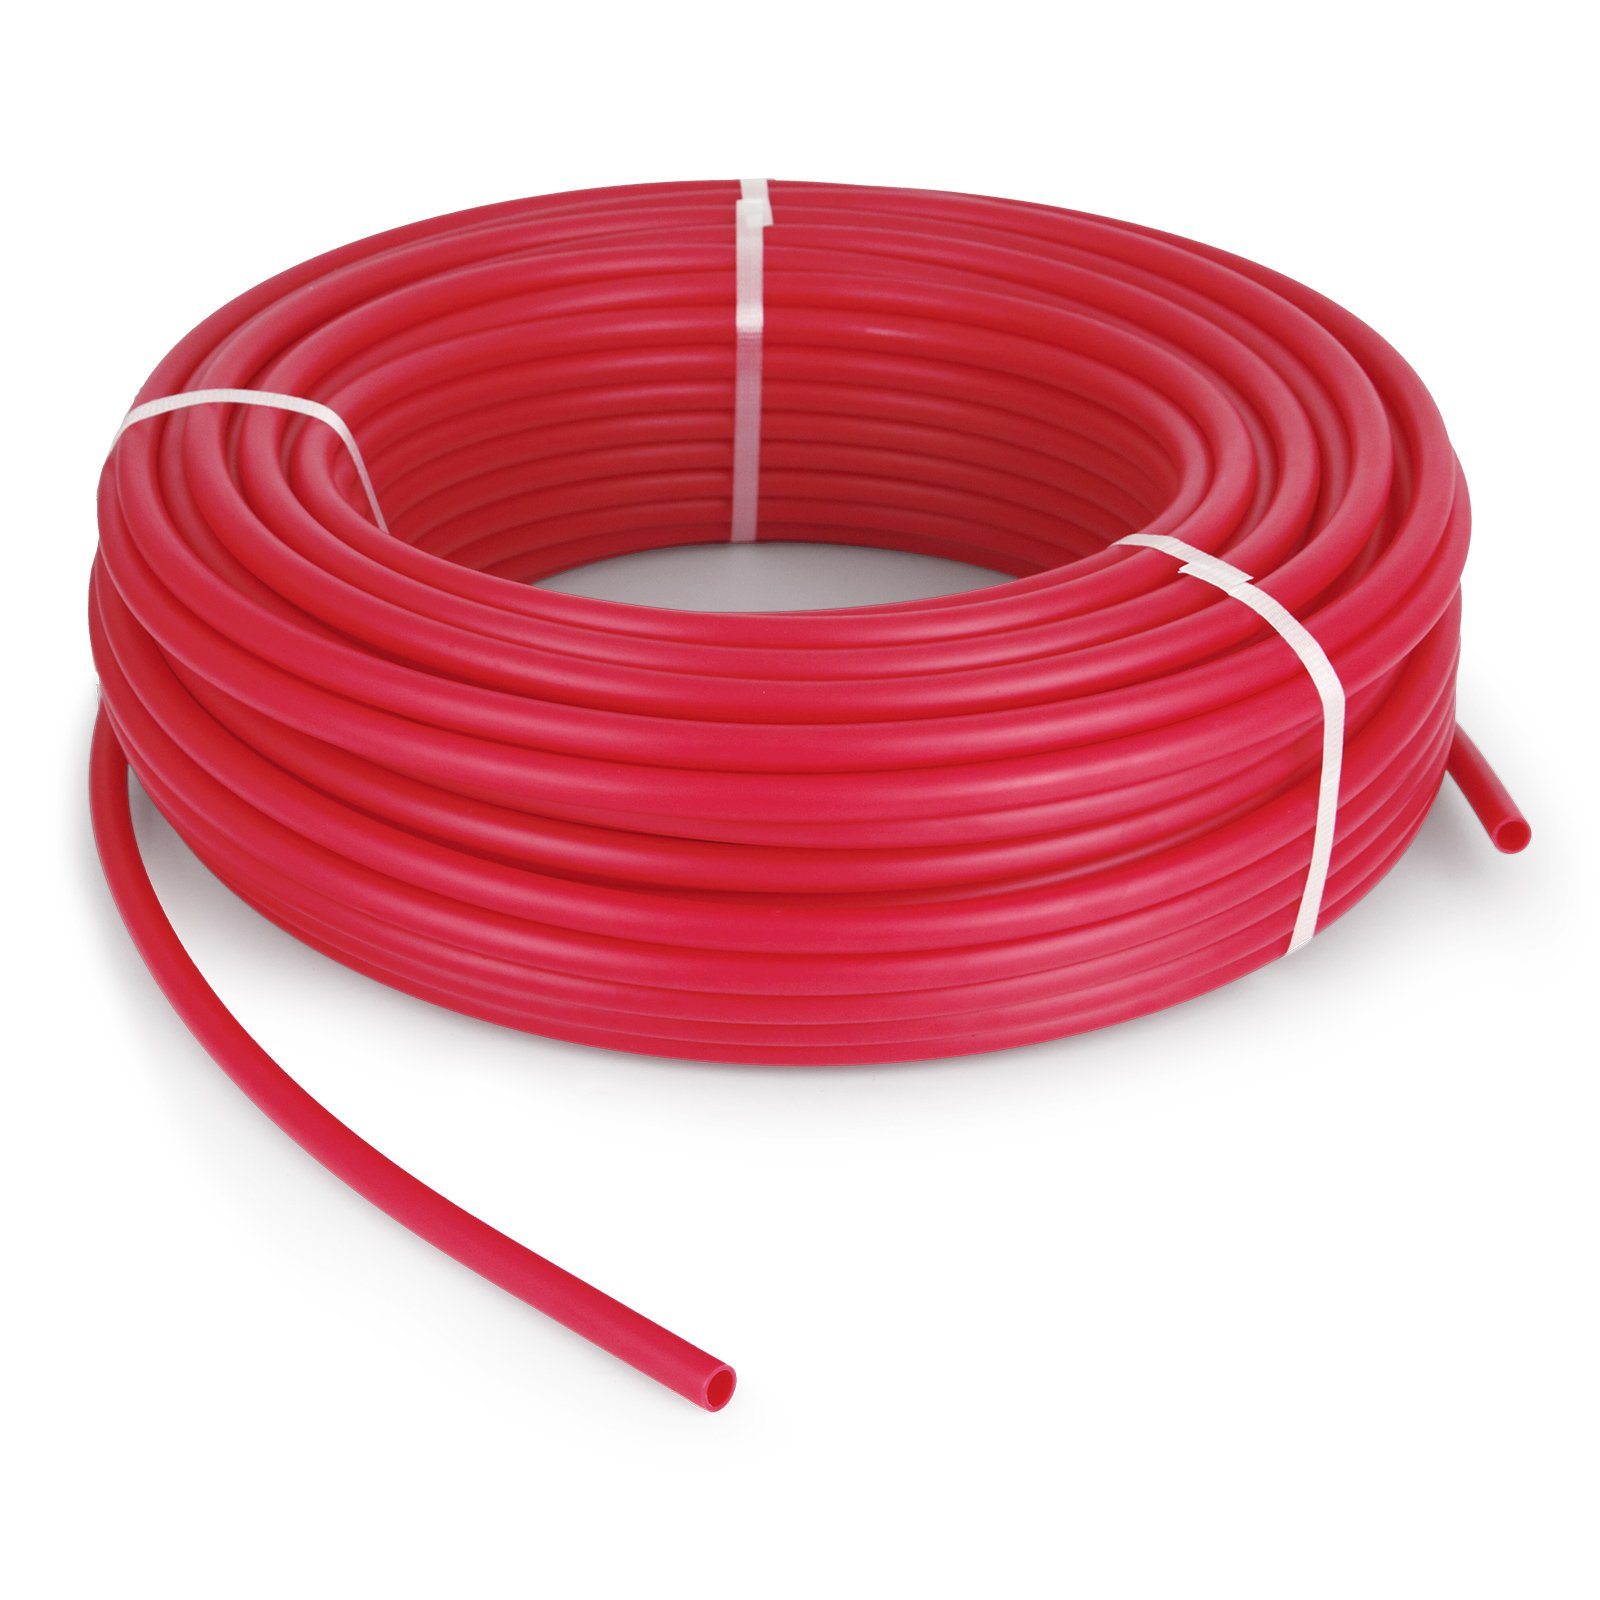 HoniHom PEX Tubing Oxygen Barrier 1/2'' 500ft EVOH Pex-B Hydronic Radiant Floor Heat Heating System Pex Pipe Pex Tube Red